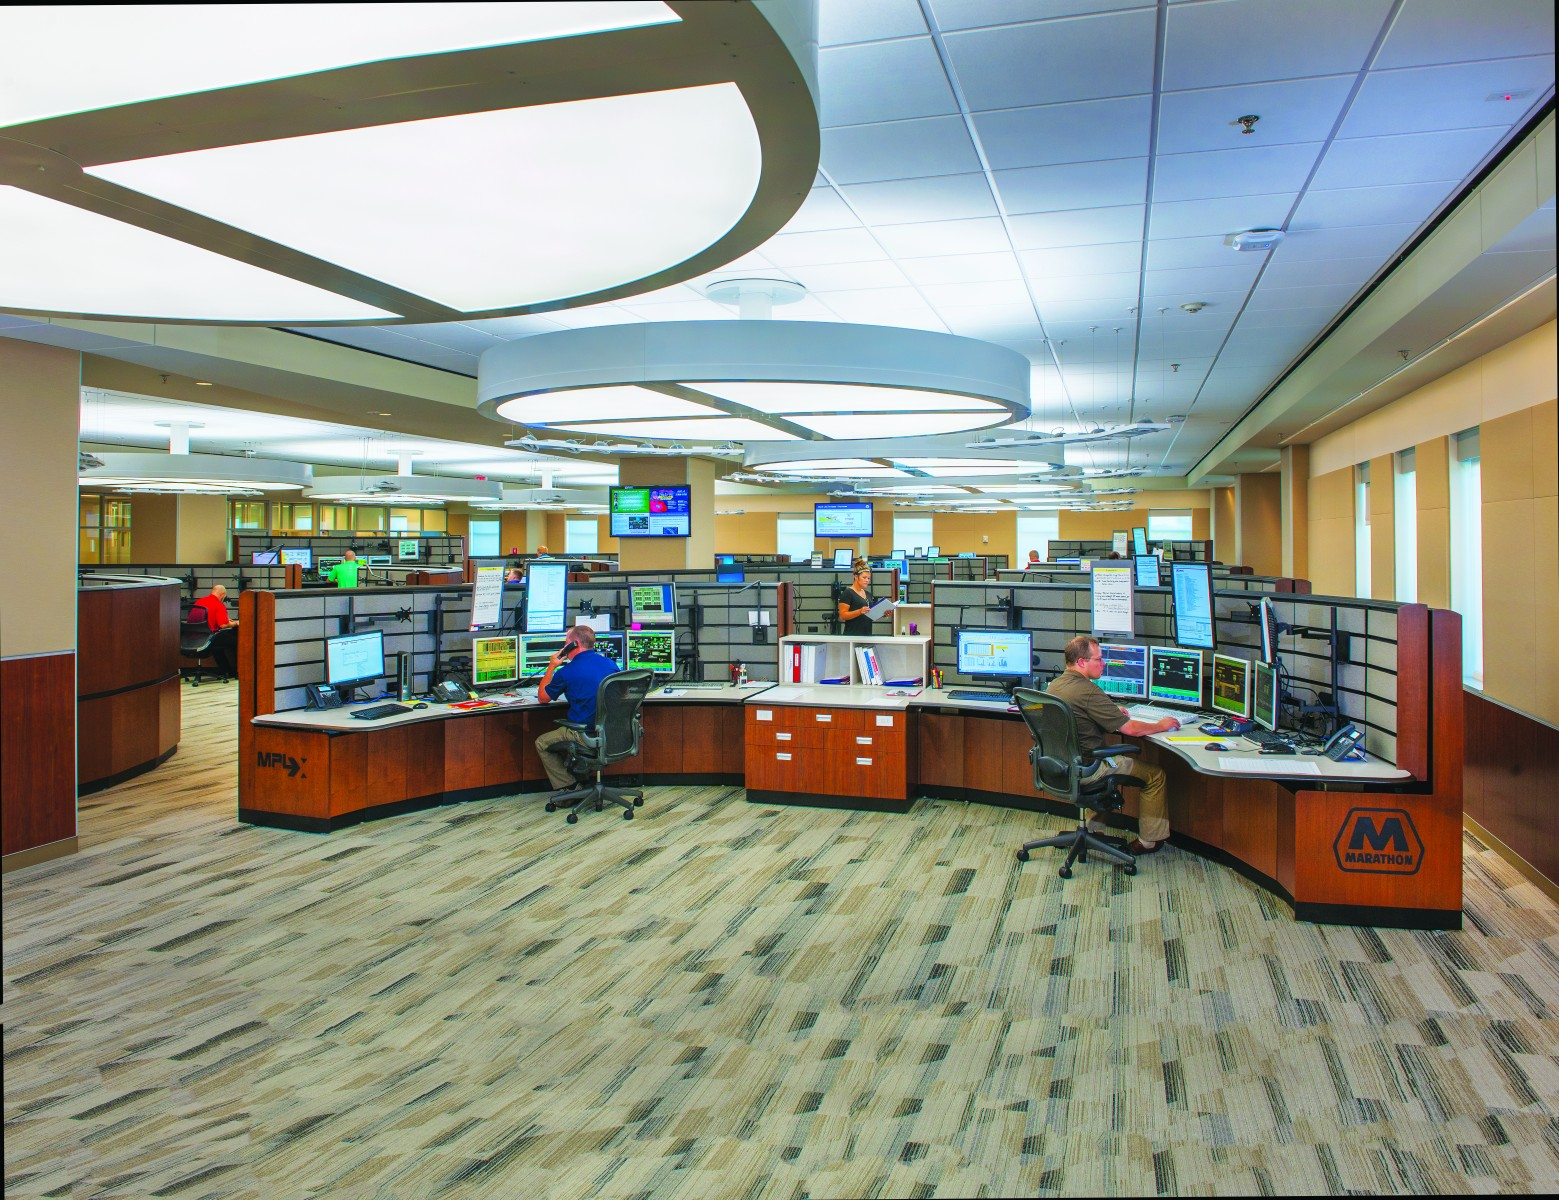 MPL's new operations center